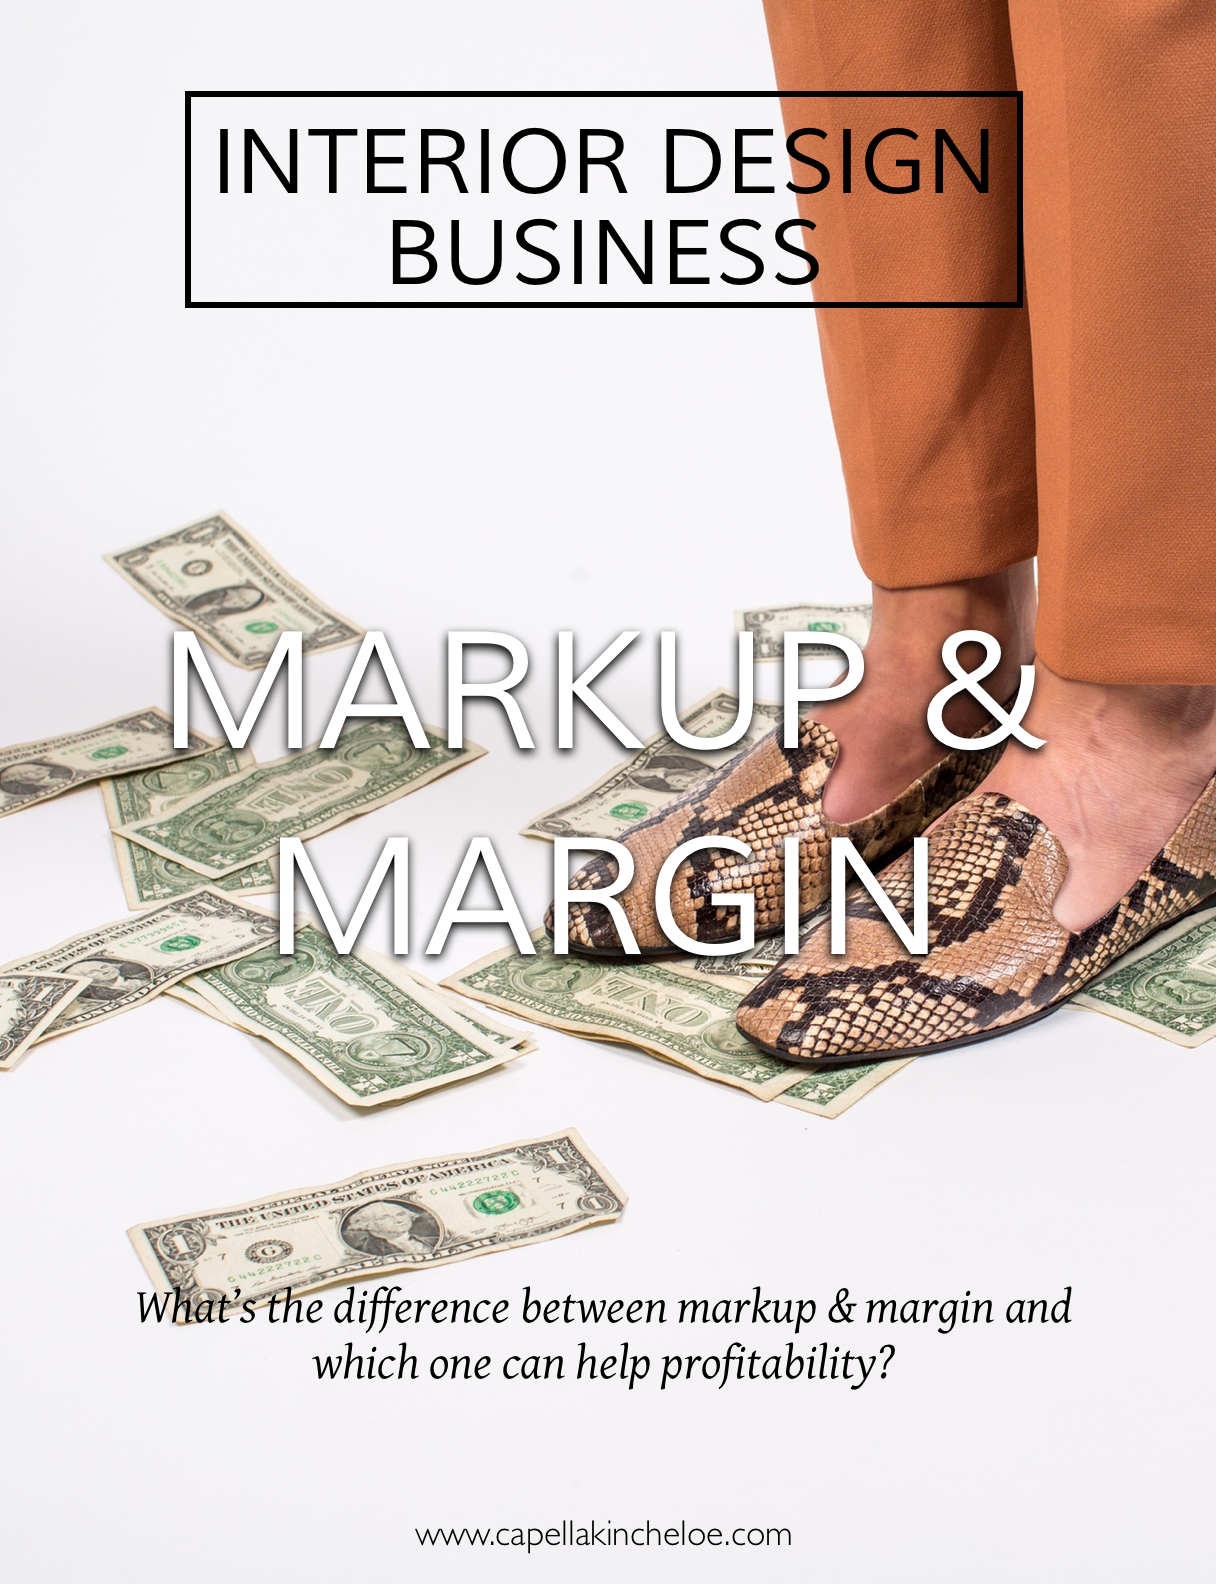 Confused on what your interior design business should be making in markup and margin? Here is the difference between markup and margin and how it makes a difference in your interior design business. #interiordesignbusiness #profitability #capellakincheloe #cktradesecrets #markup #margin